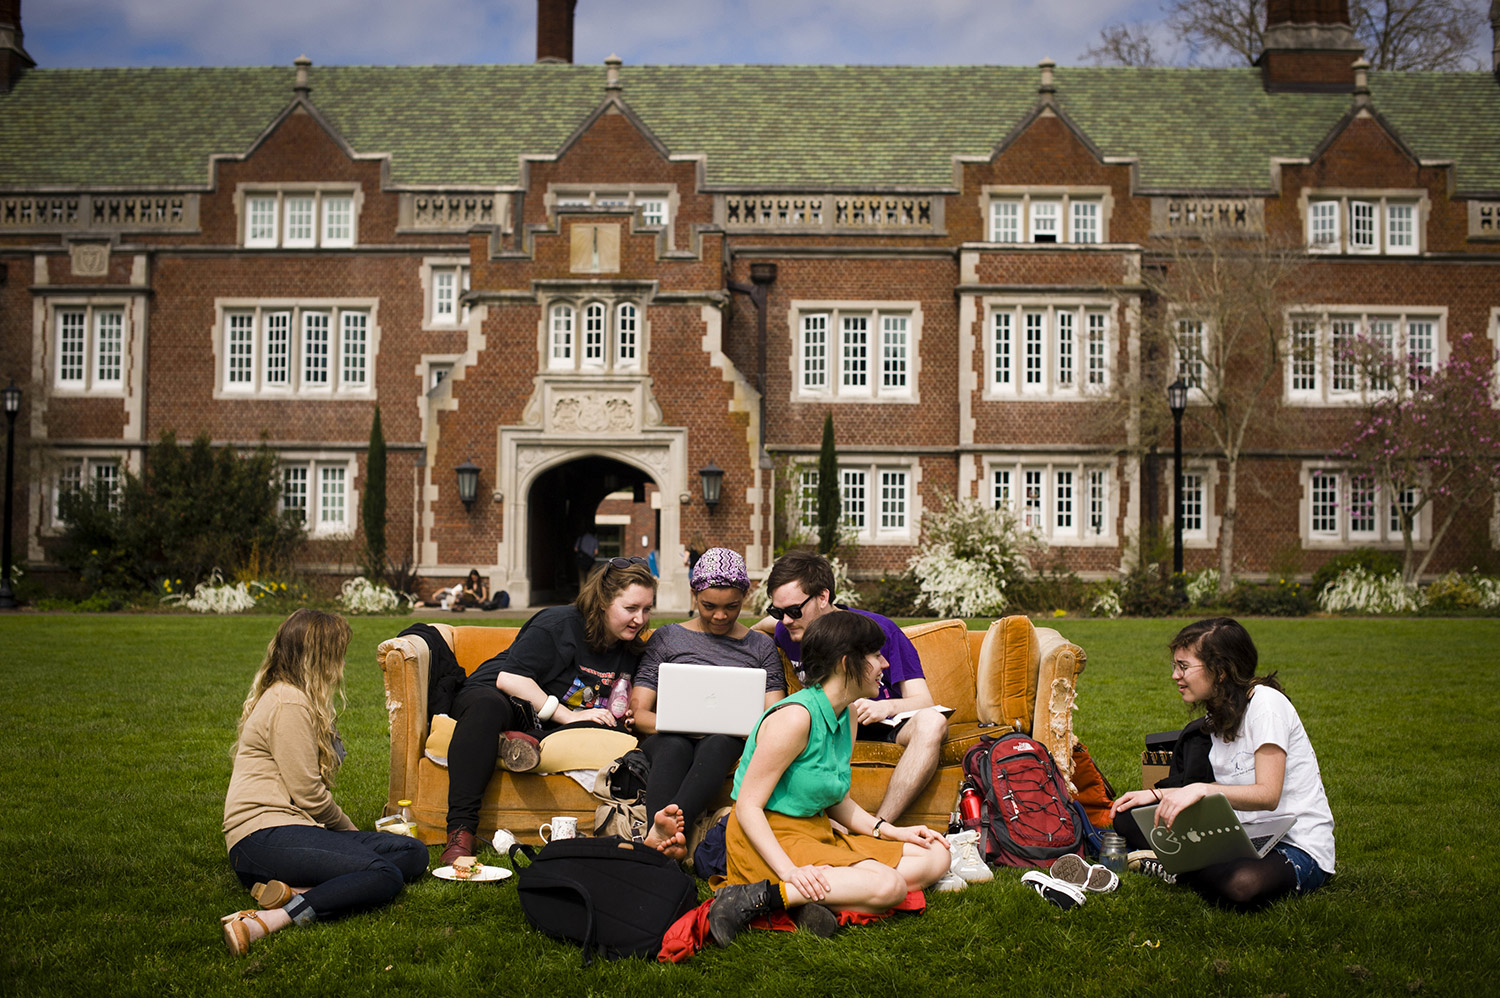 reed college admissions essay Comprehensive information on admission at reed college, including admission requirements and deadlines, early and regular admission rates, gpas and test scores of recently admitted freshmen, and more.